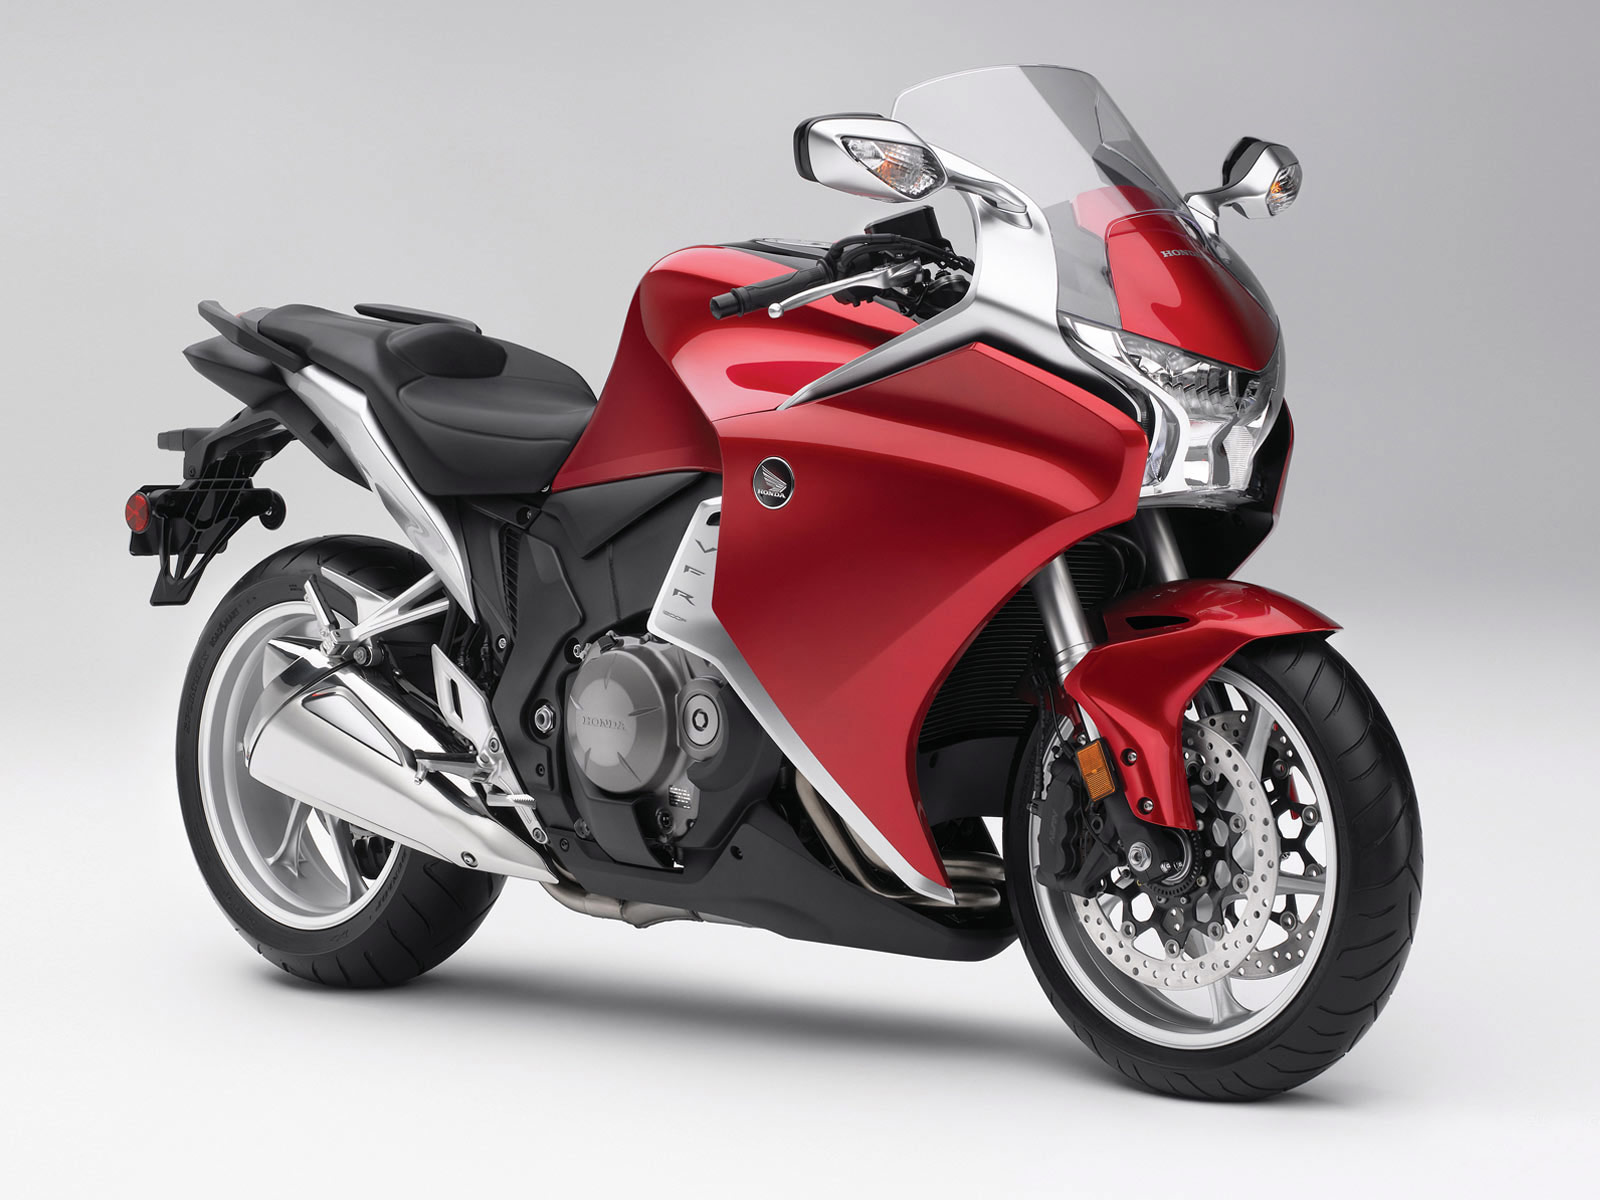 honda vfr1200f 2010 insurance info wallpapers specs. Black Bedroom Furniture Sets. Home Design Ideas